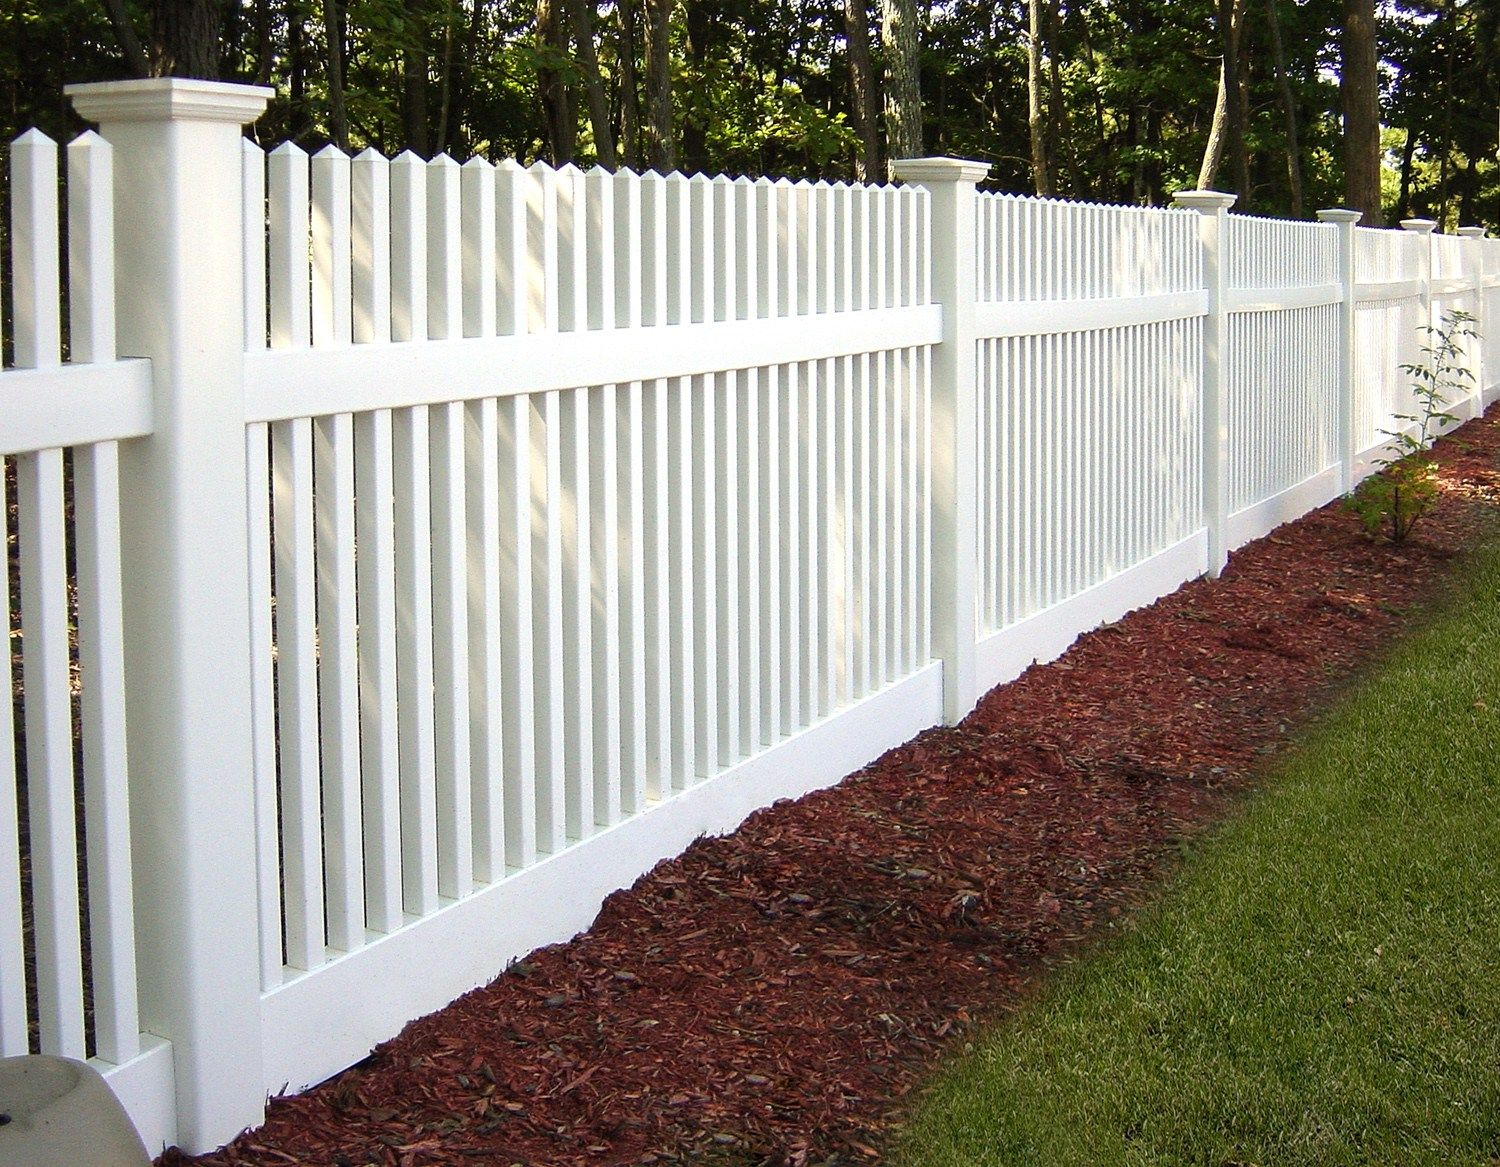 of Illusions PVC Vinyl Wood Grain and Color Fence